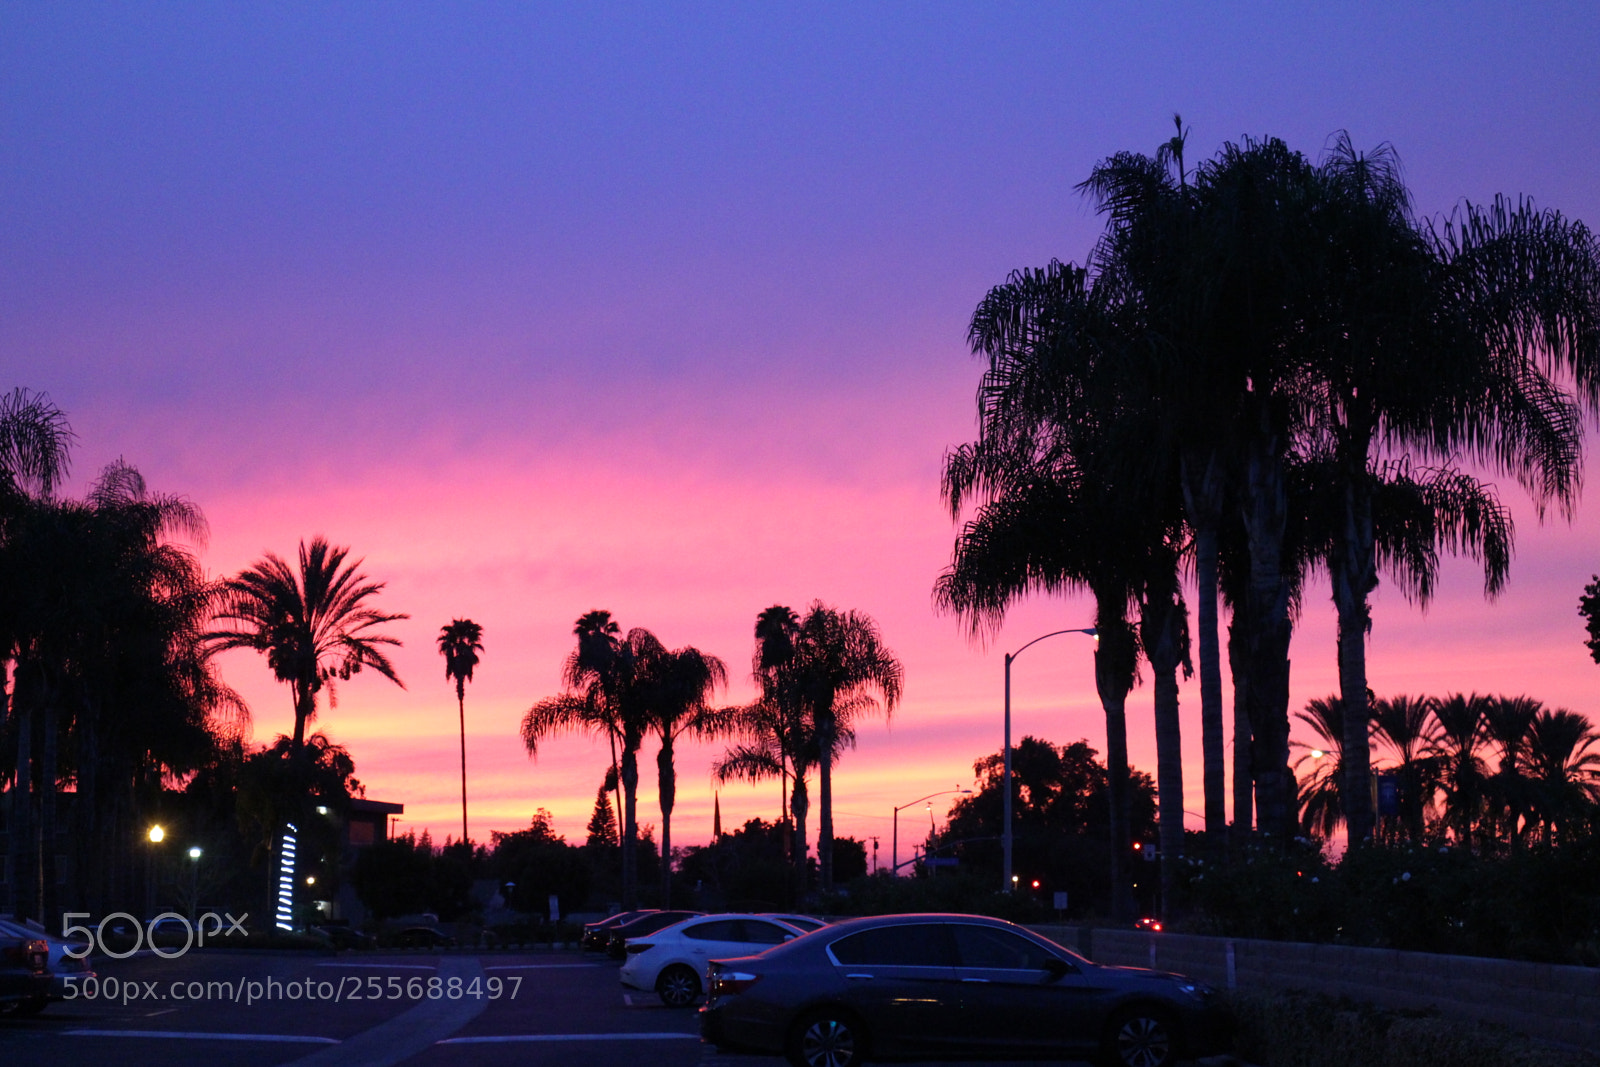 My California Sunset, Canon EOS M2, Canon EF-M 18-55mm f/3.5-5.6 IS STM